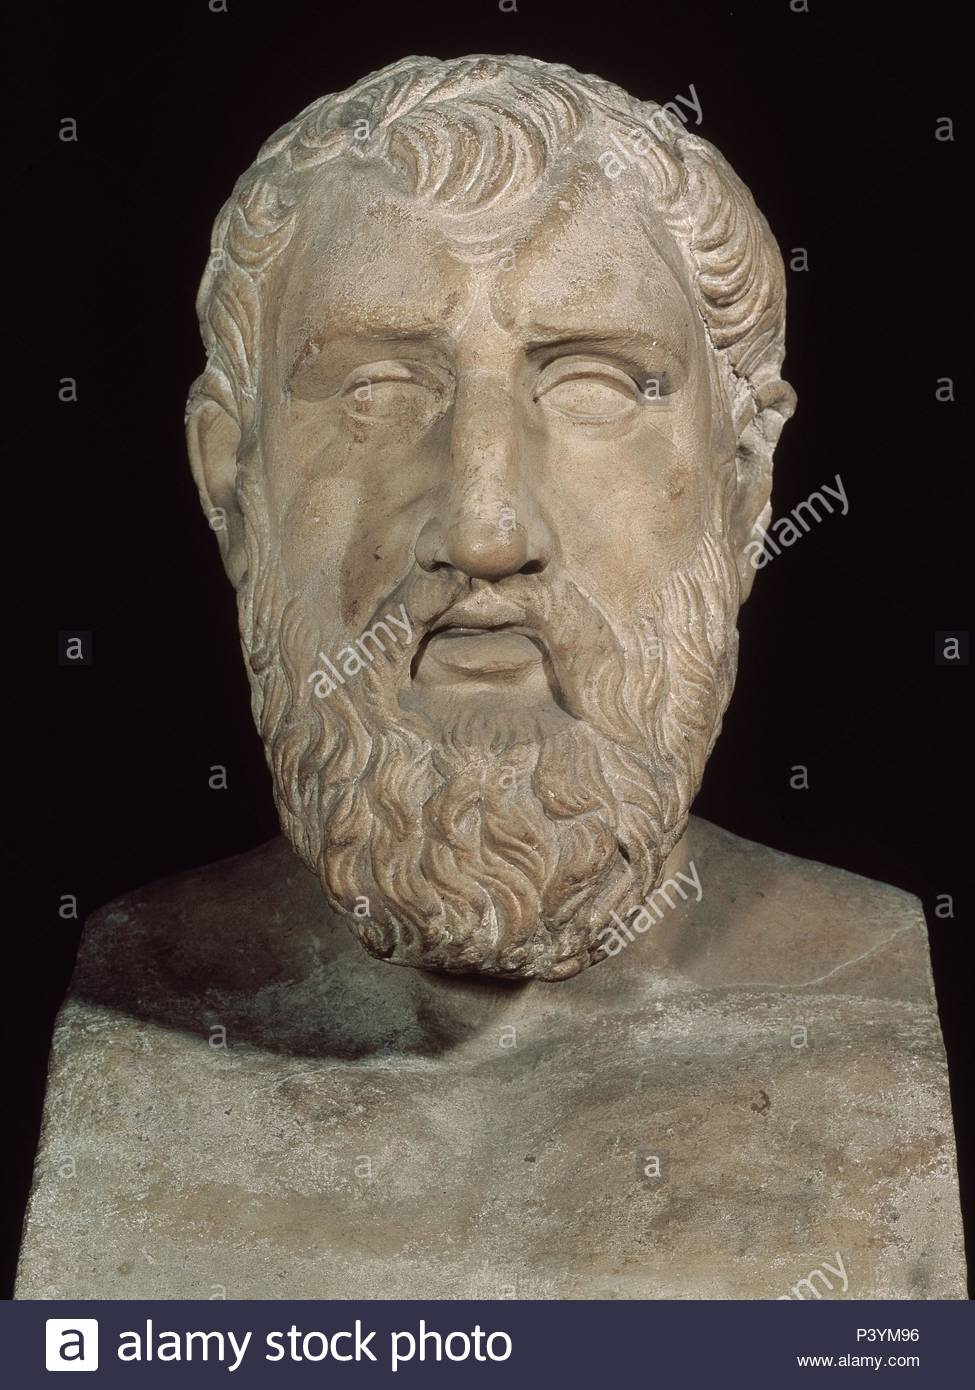 Bust of Zeno of Citium (335-264 BC), Greek philosopher and founder of stoicism.. Rome, museum of the Capitole. Location: MUSEO CAPITOLINO, ROME, ITALIA. - Stock Image